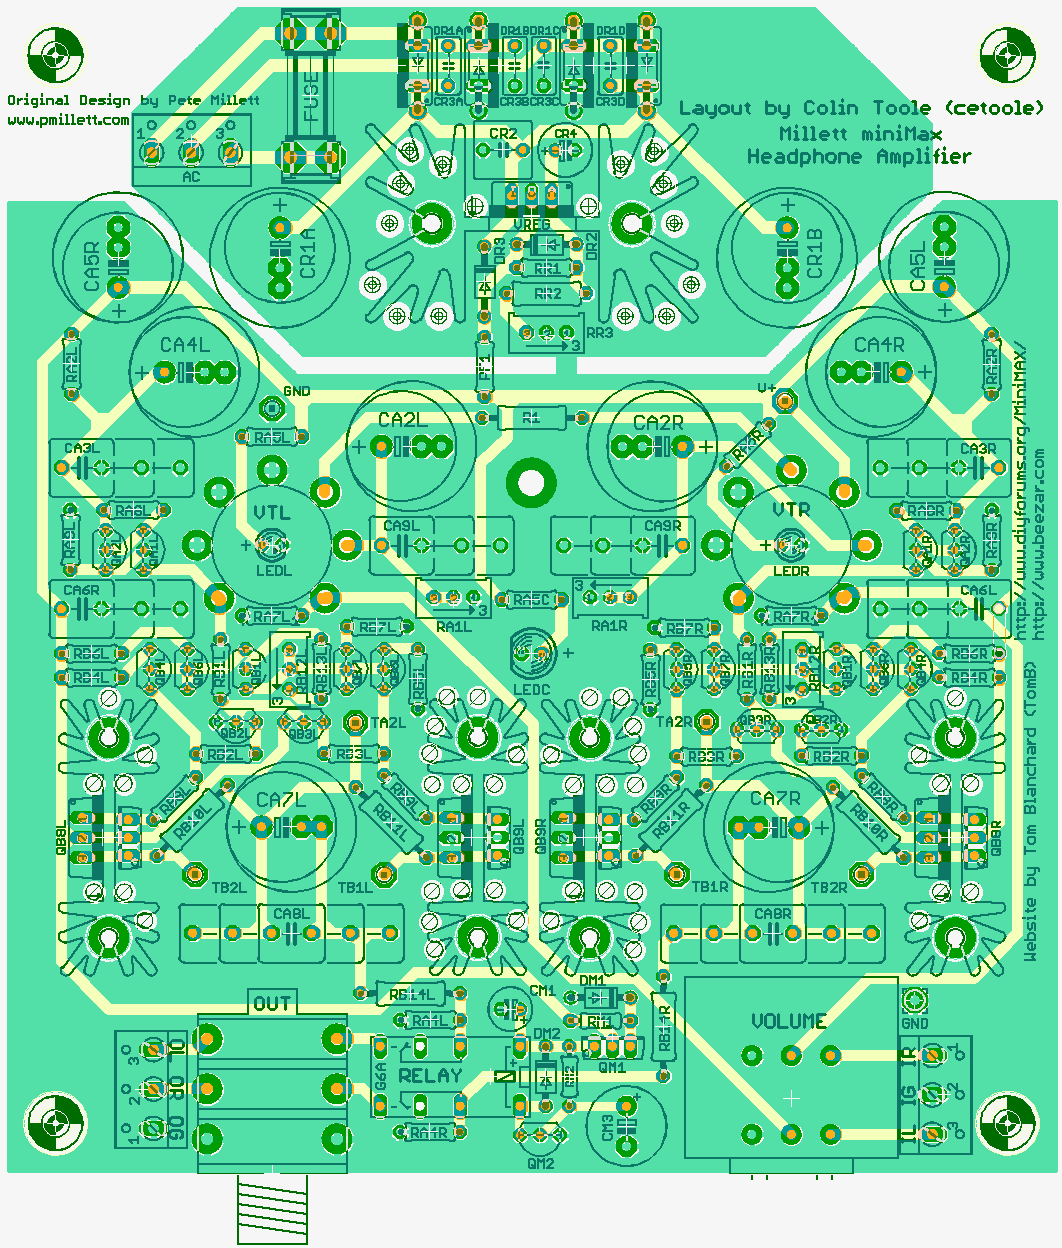 View Topic The New Millett Hybrid Minimax Wiring Diagram Based On Prototype Builds Heres Updated Layout And Schematic Click For Larger Files